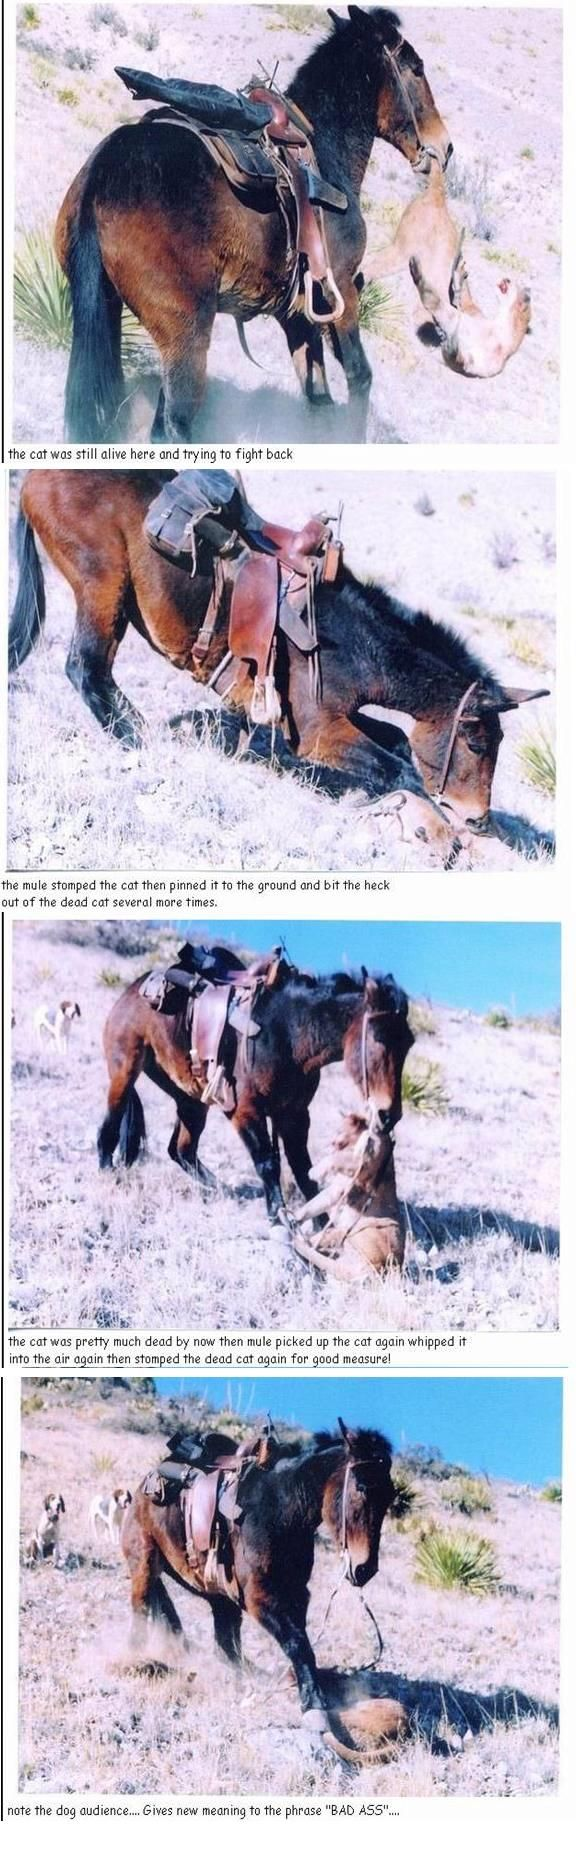 Mule kills mountain lion!! This is why you should own a mule...you won't see this from a horse!  Just sayin'